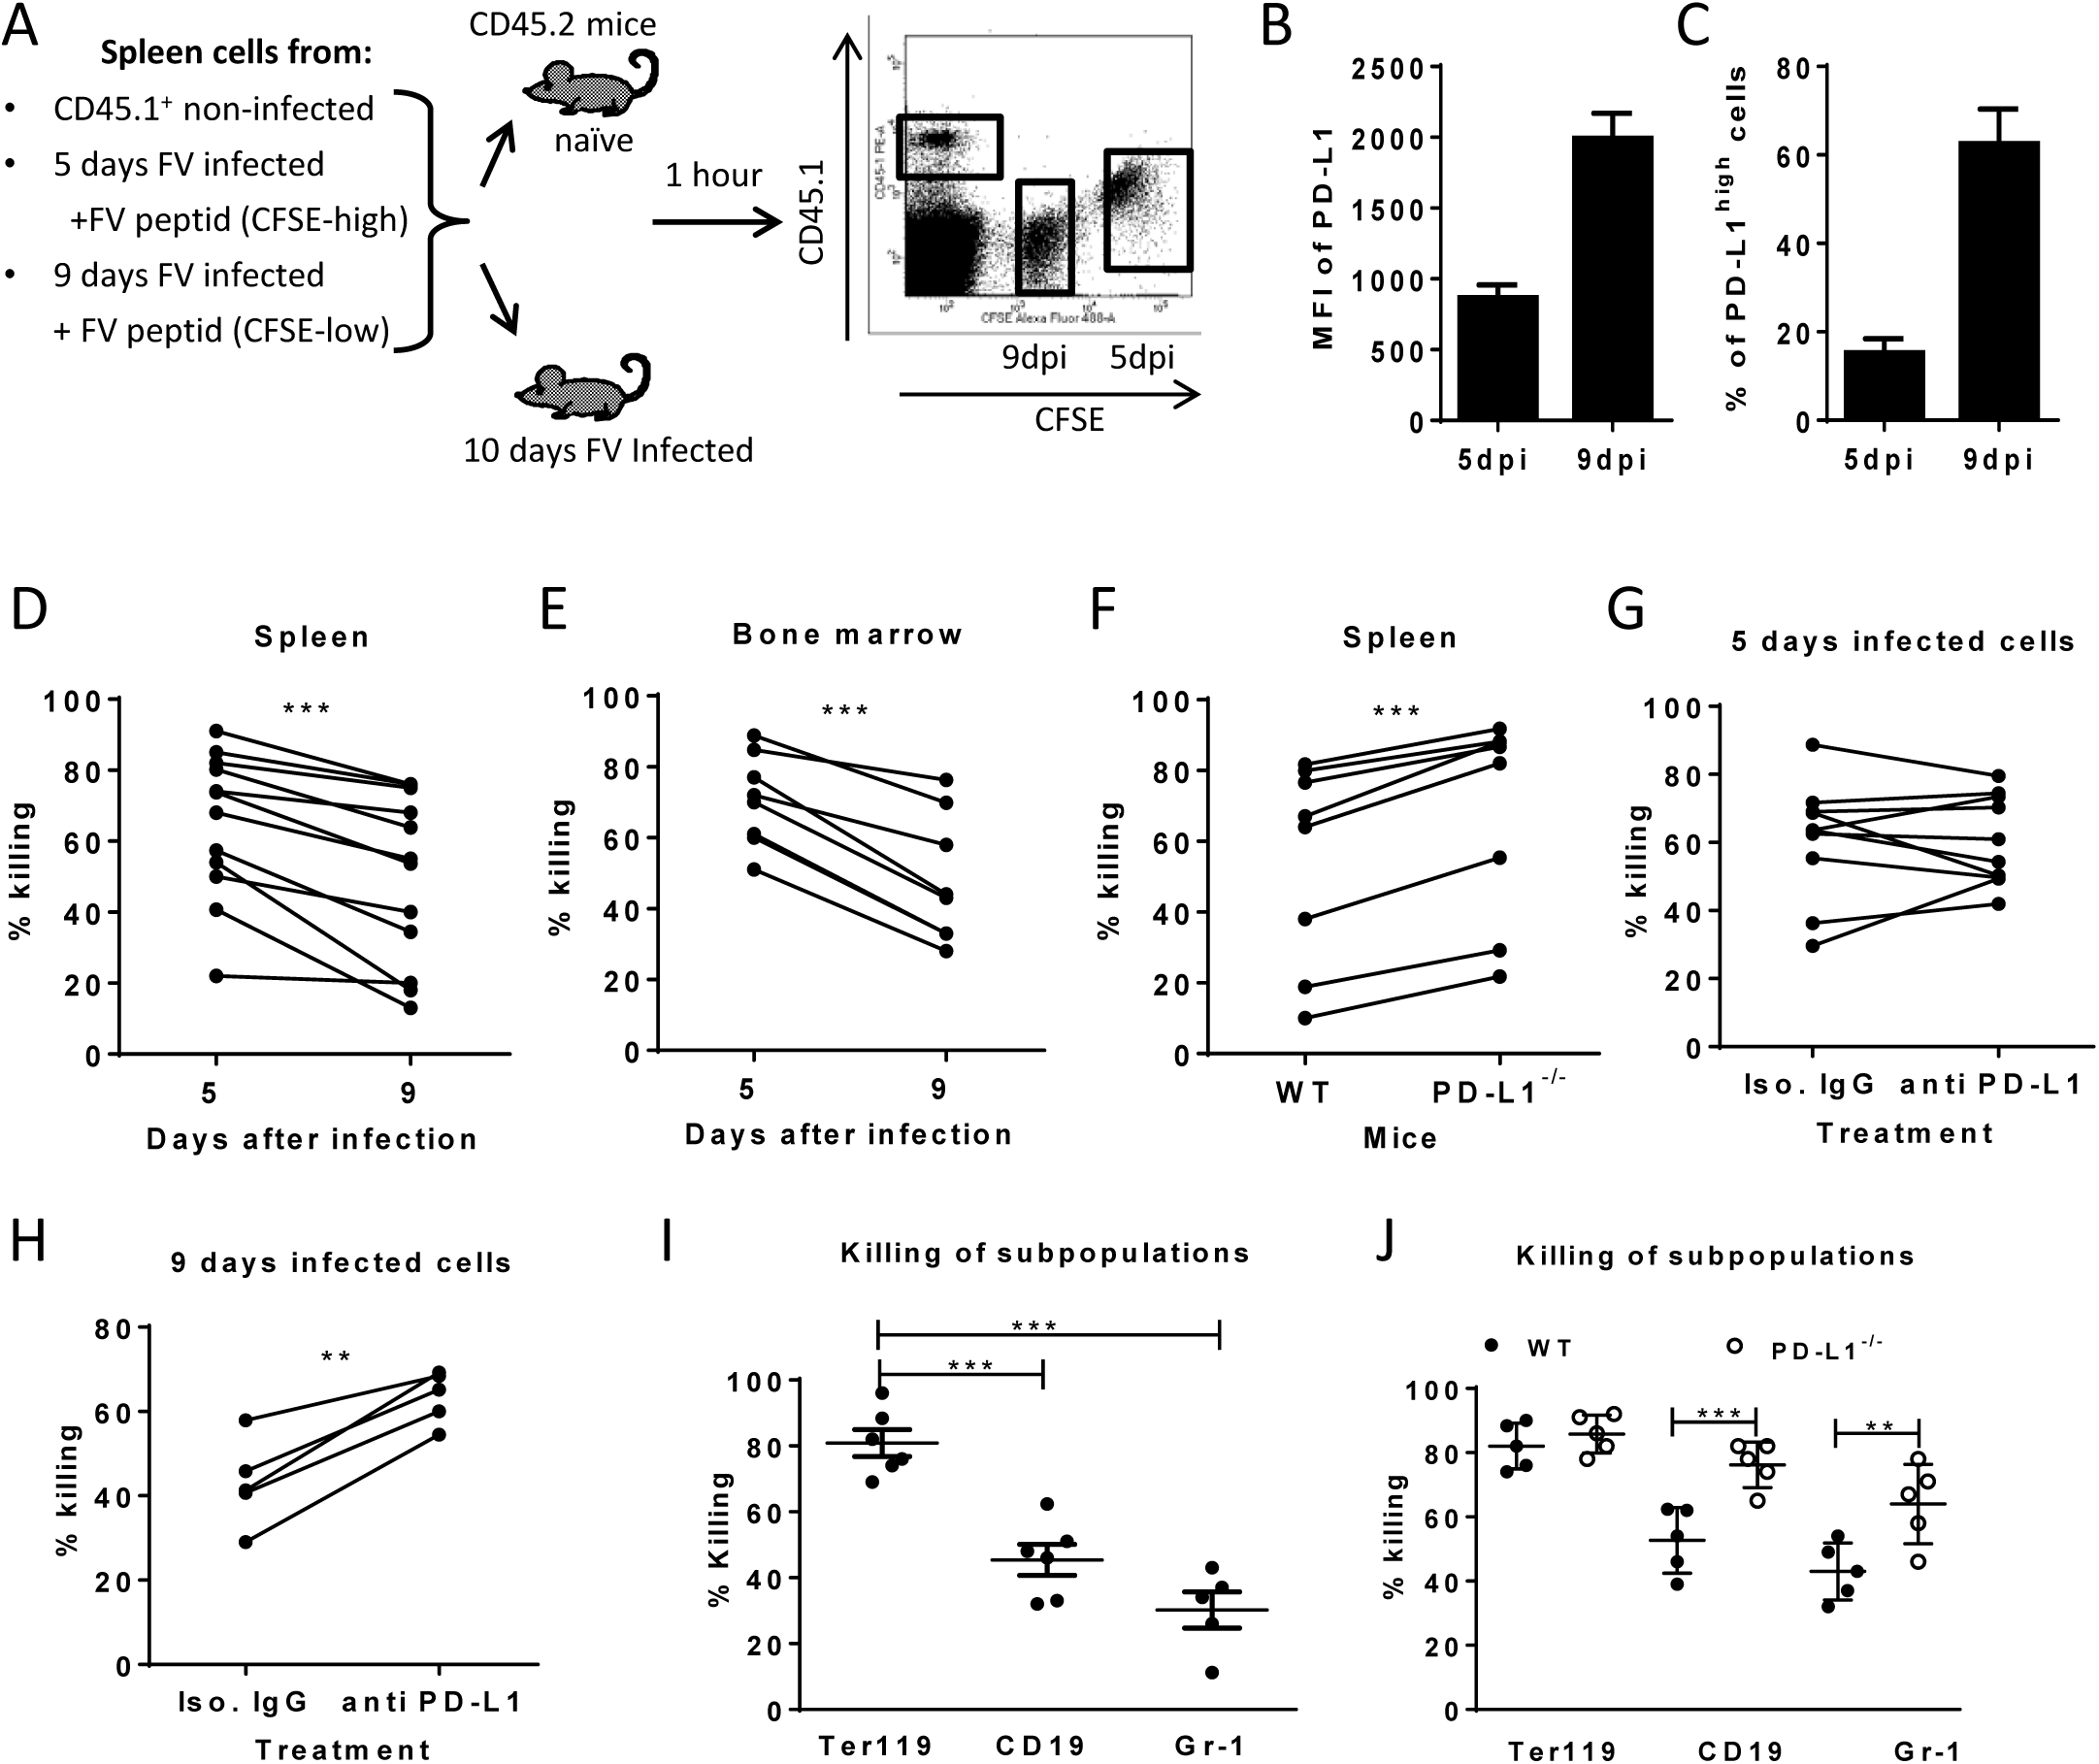 Cytotoxic activity of CTL against target cells expressing different levels of PD-L1.